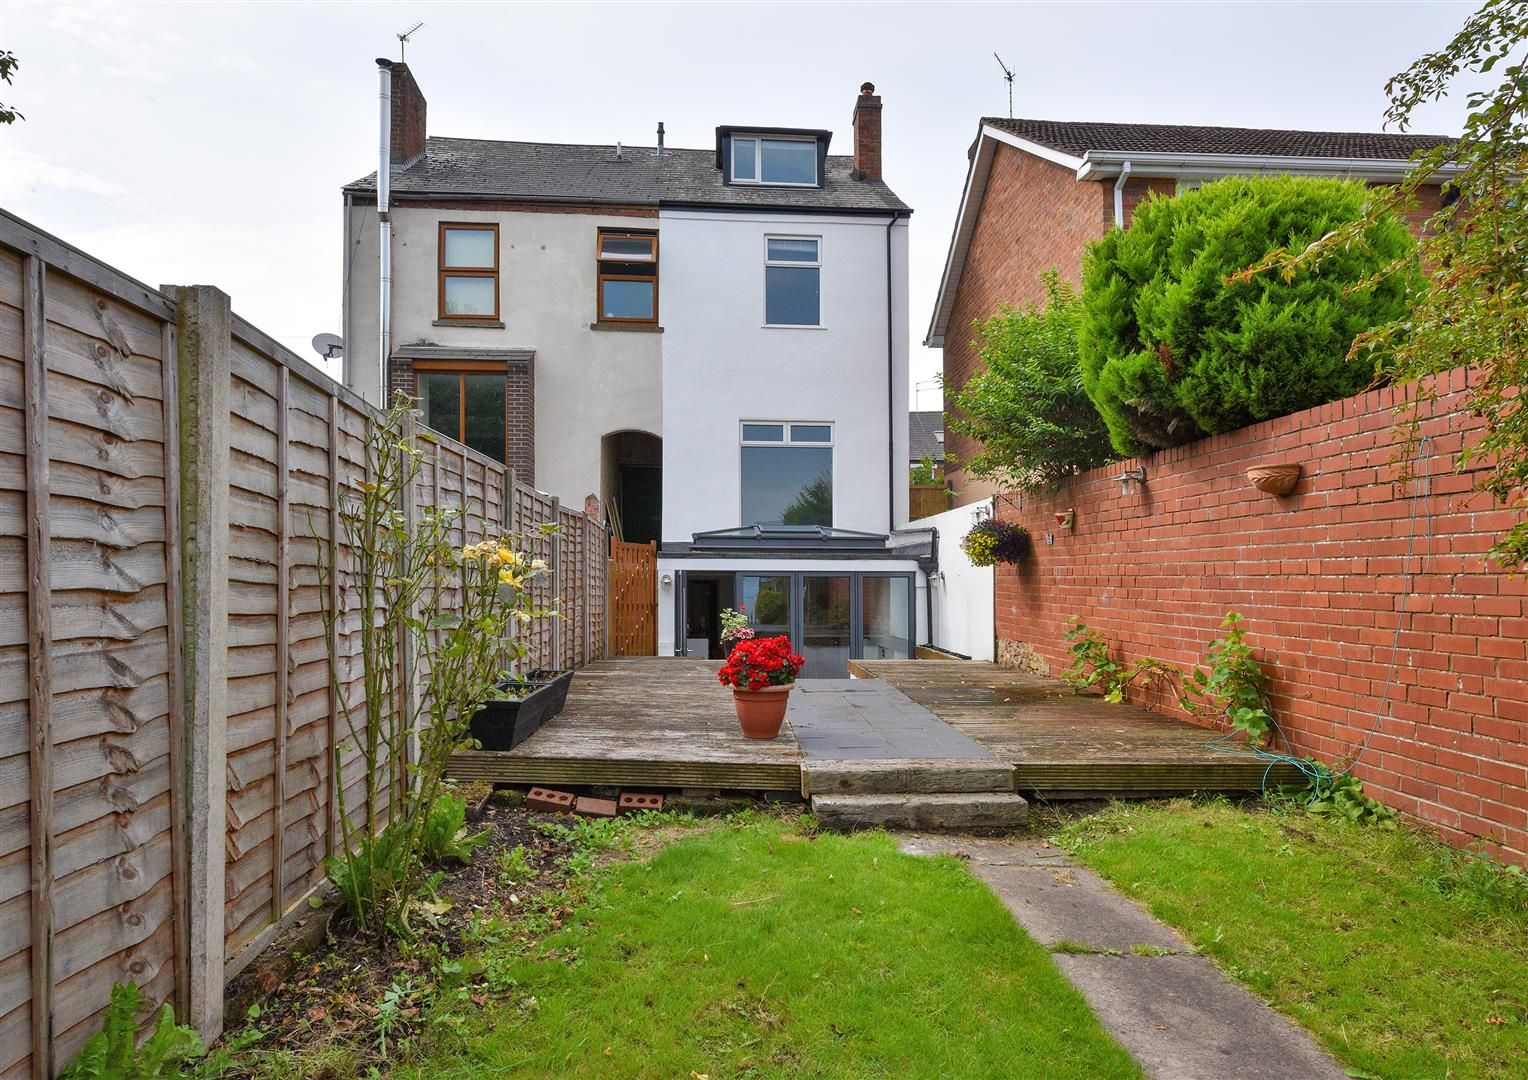 4 bed semi-detached for sale in Old Quarter 1